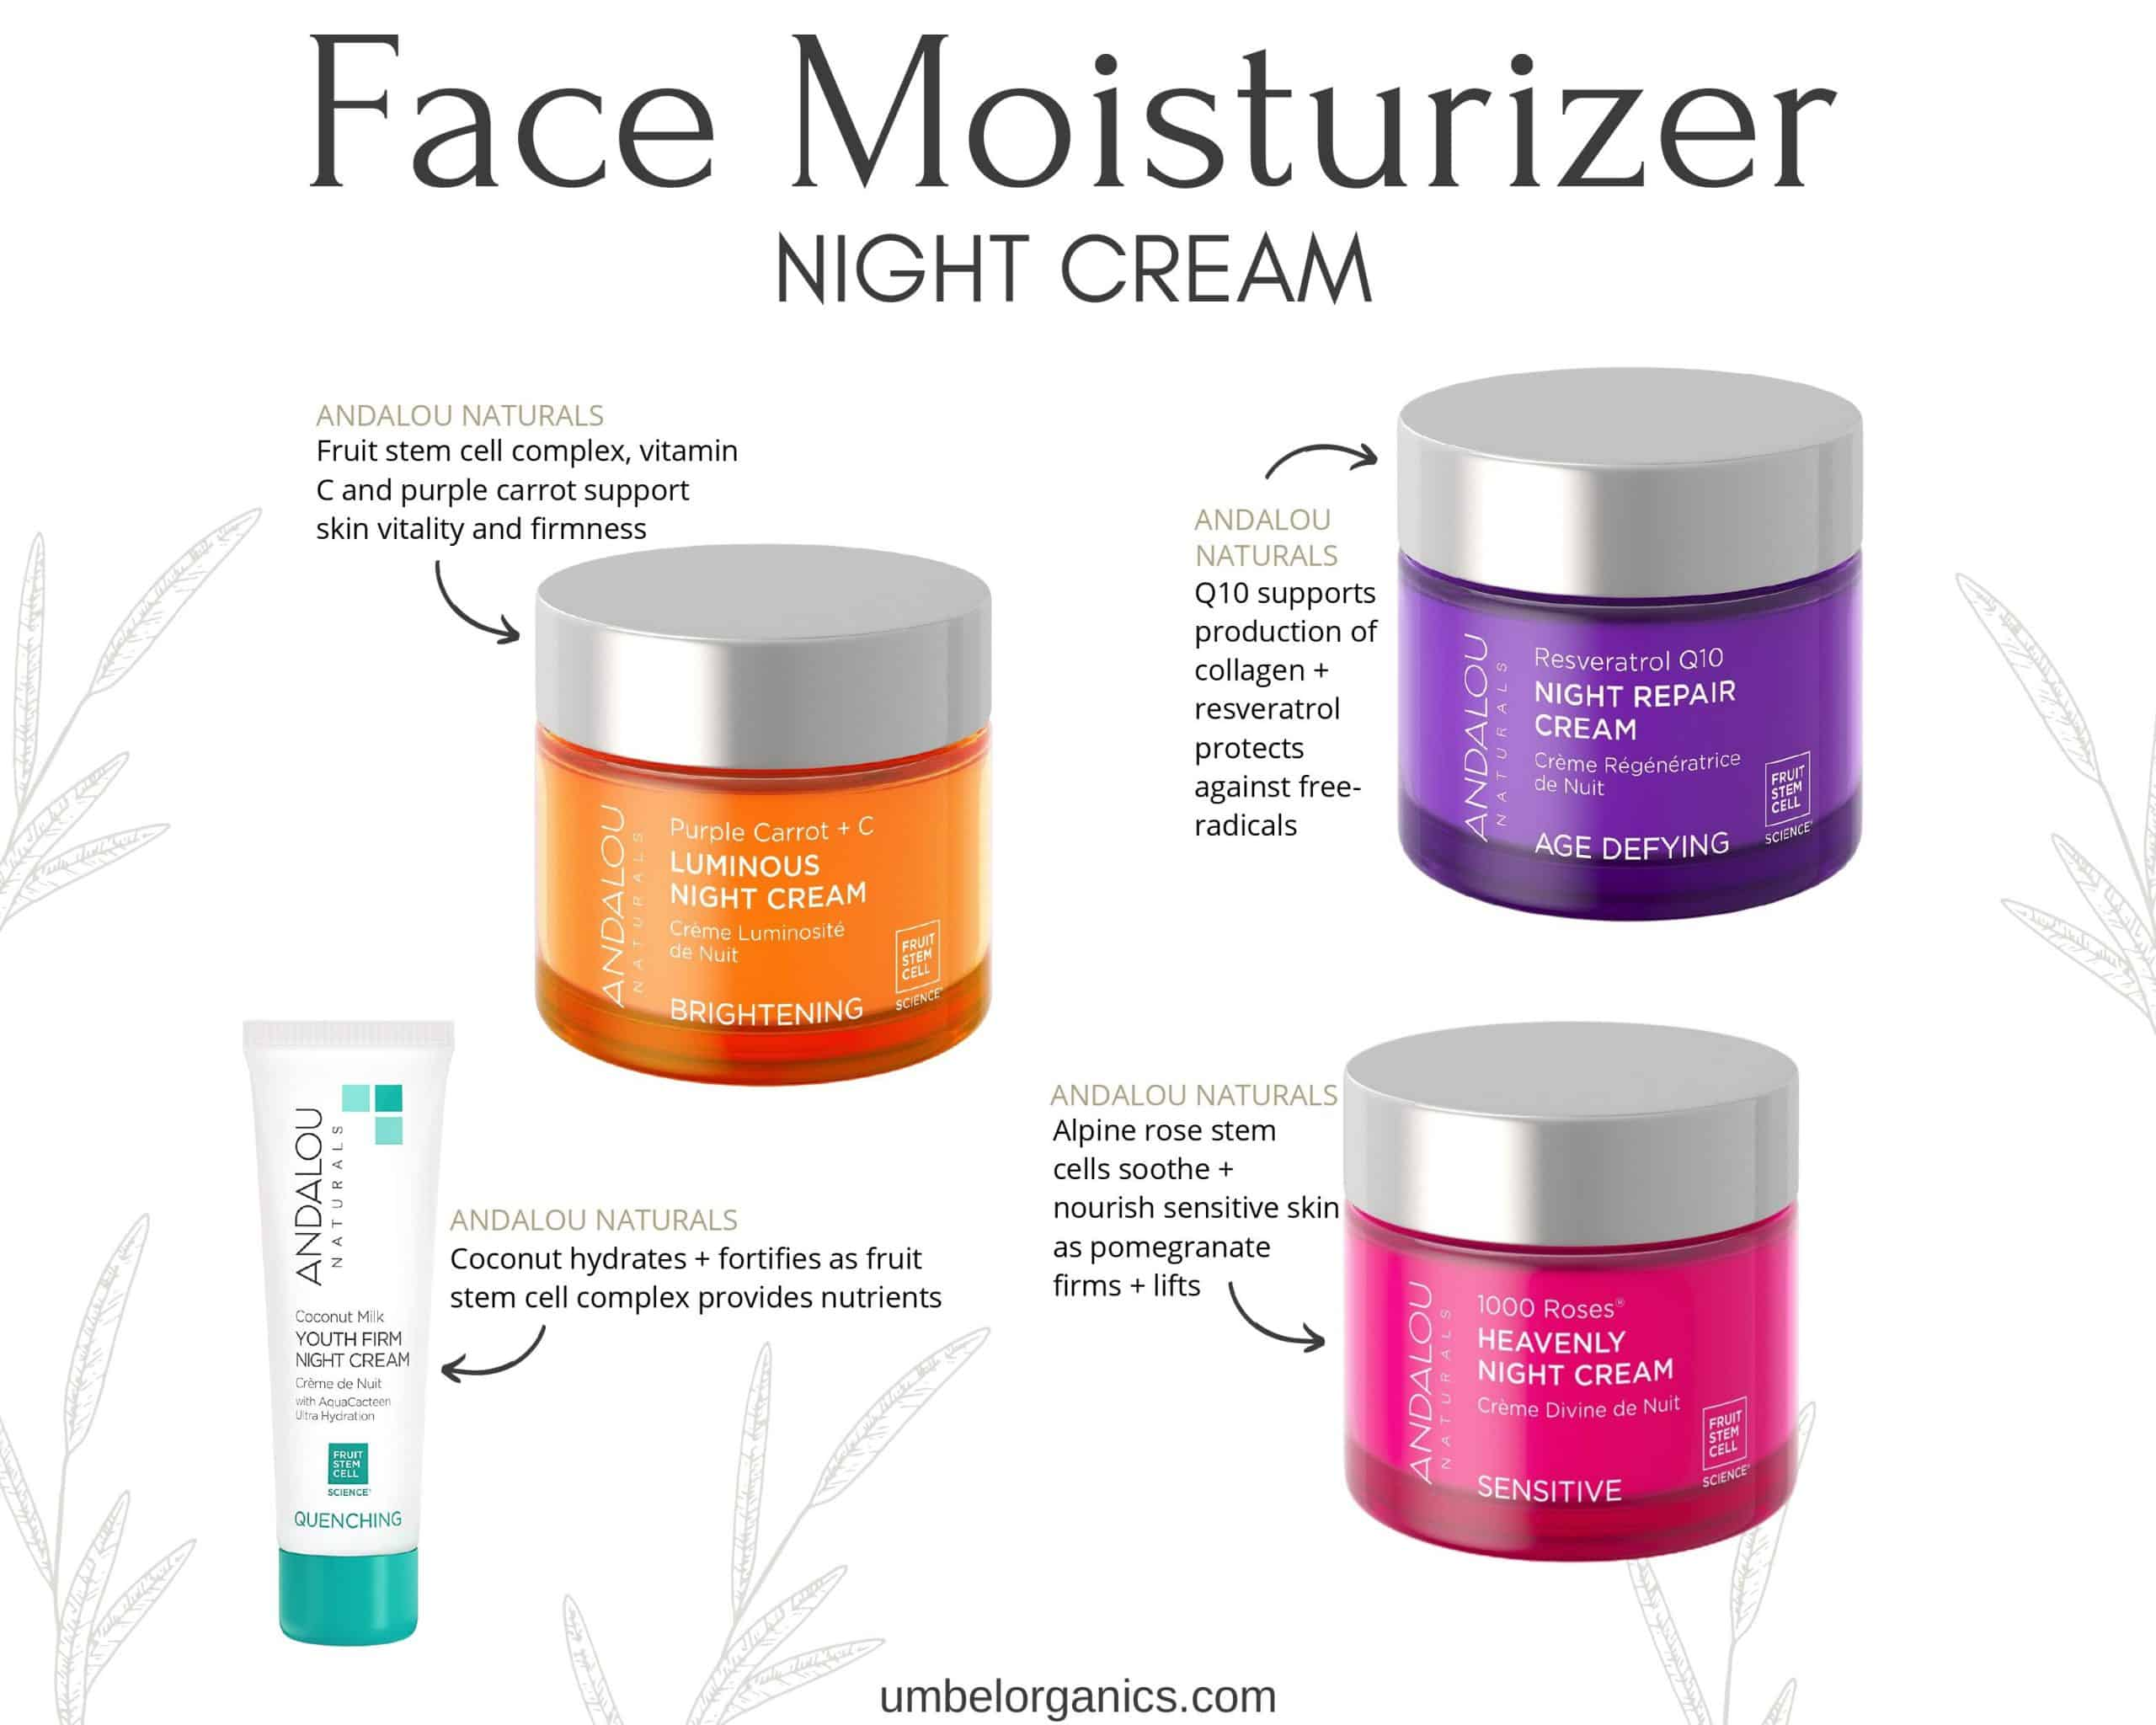 4 Clean, Budget-friendly Night Cream Moisturizers